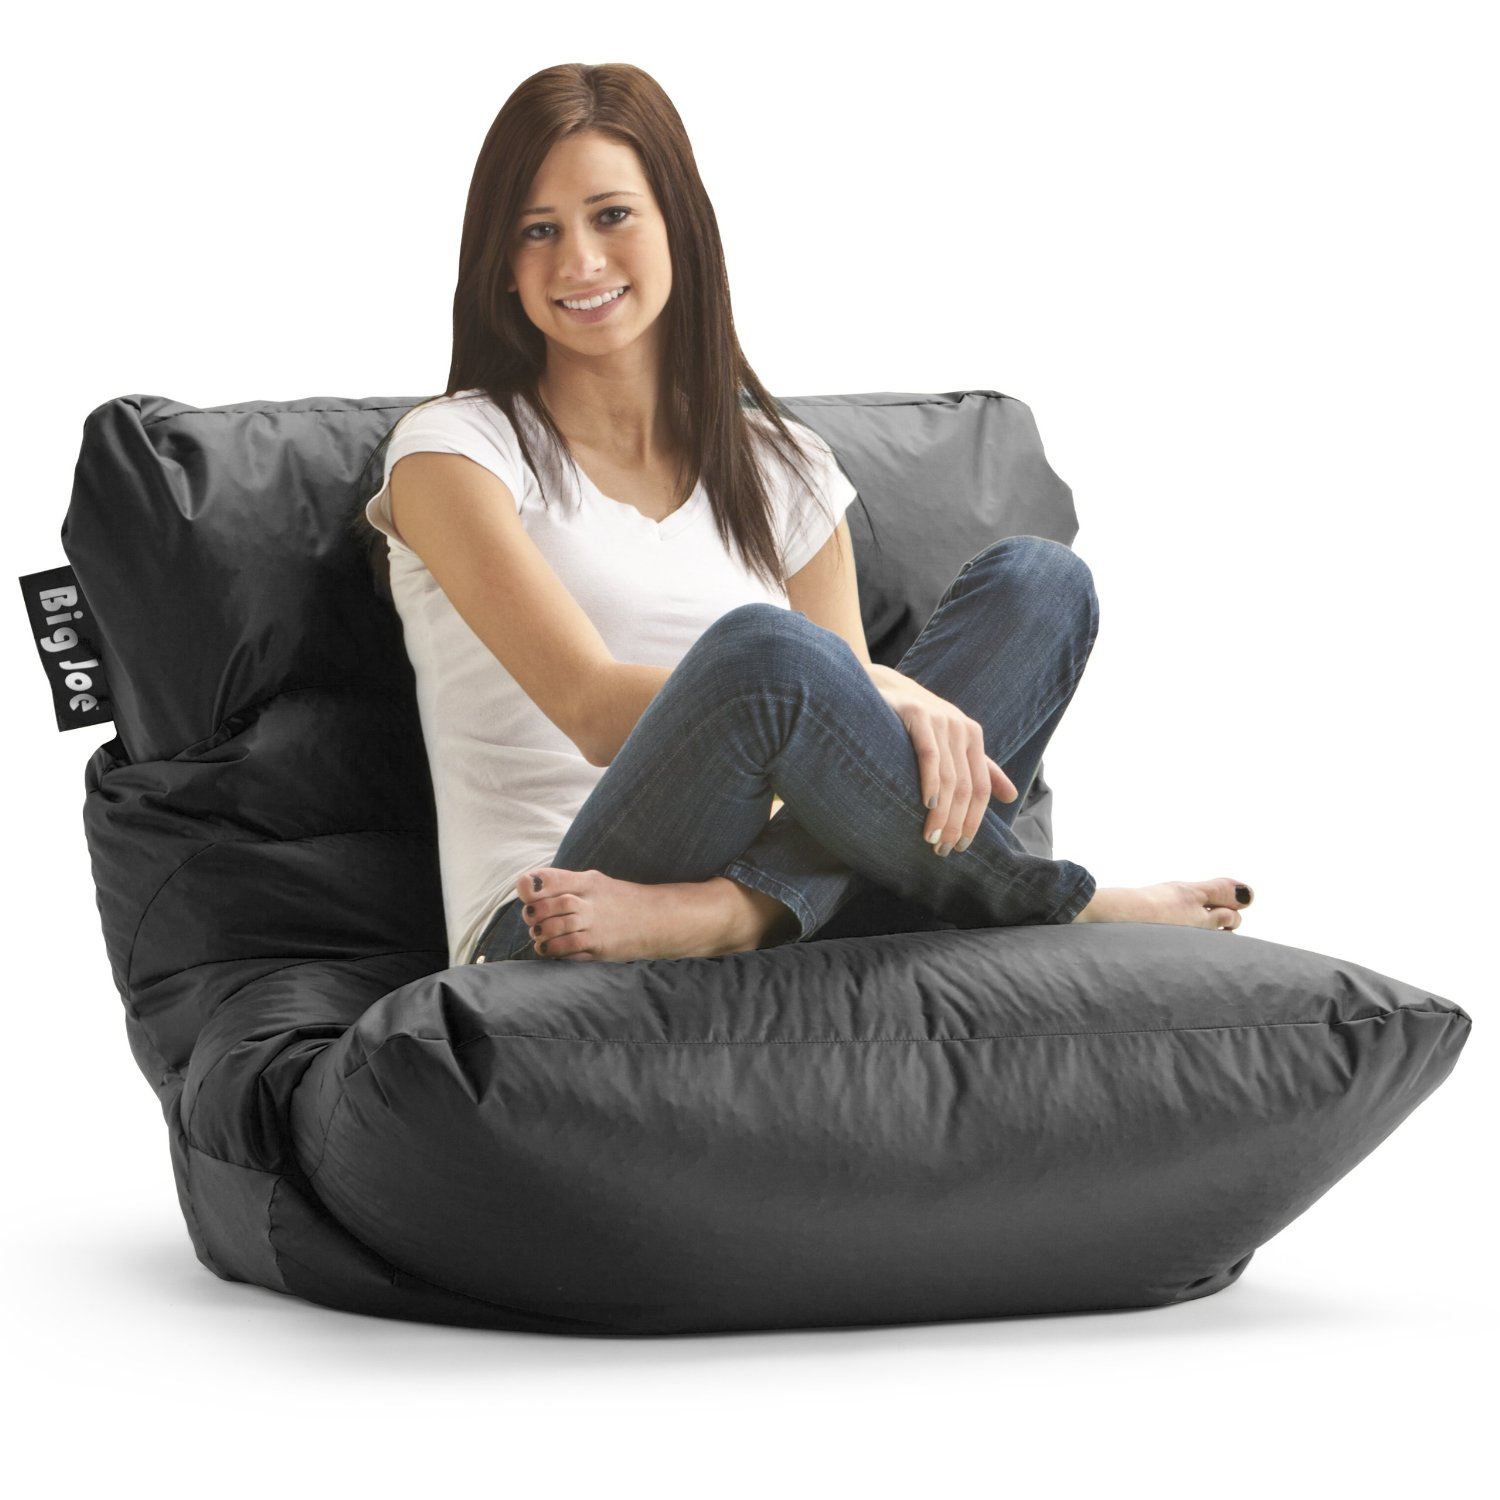 Best Bean Bag Chairs for Adults Ideas with